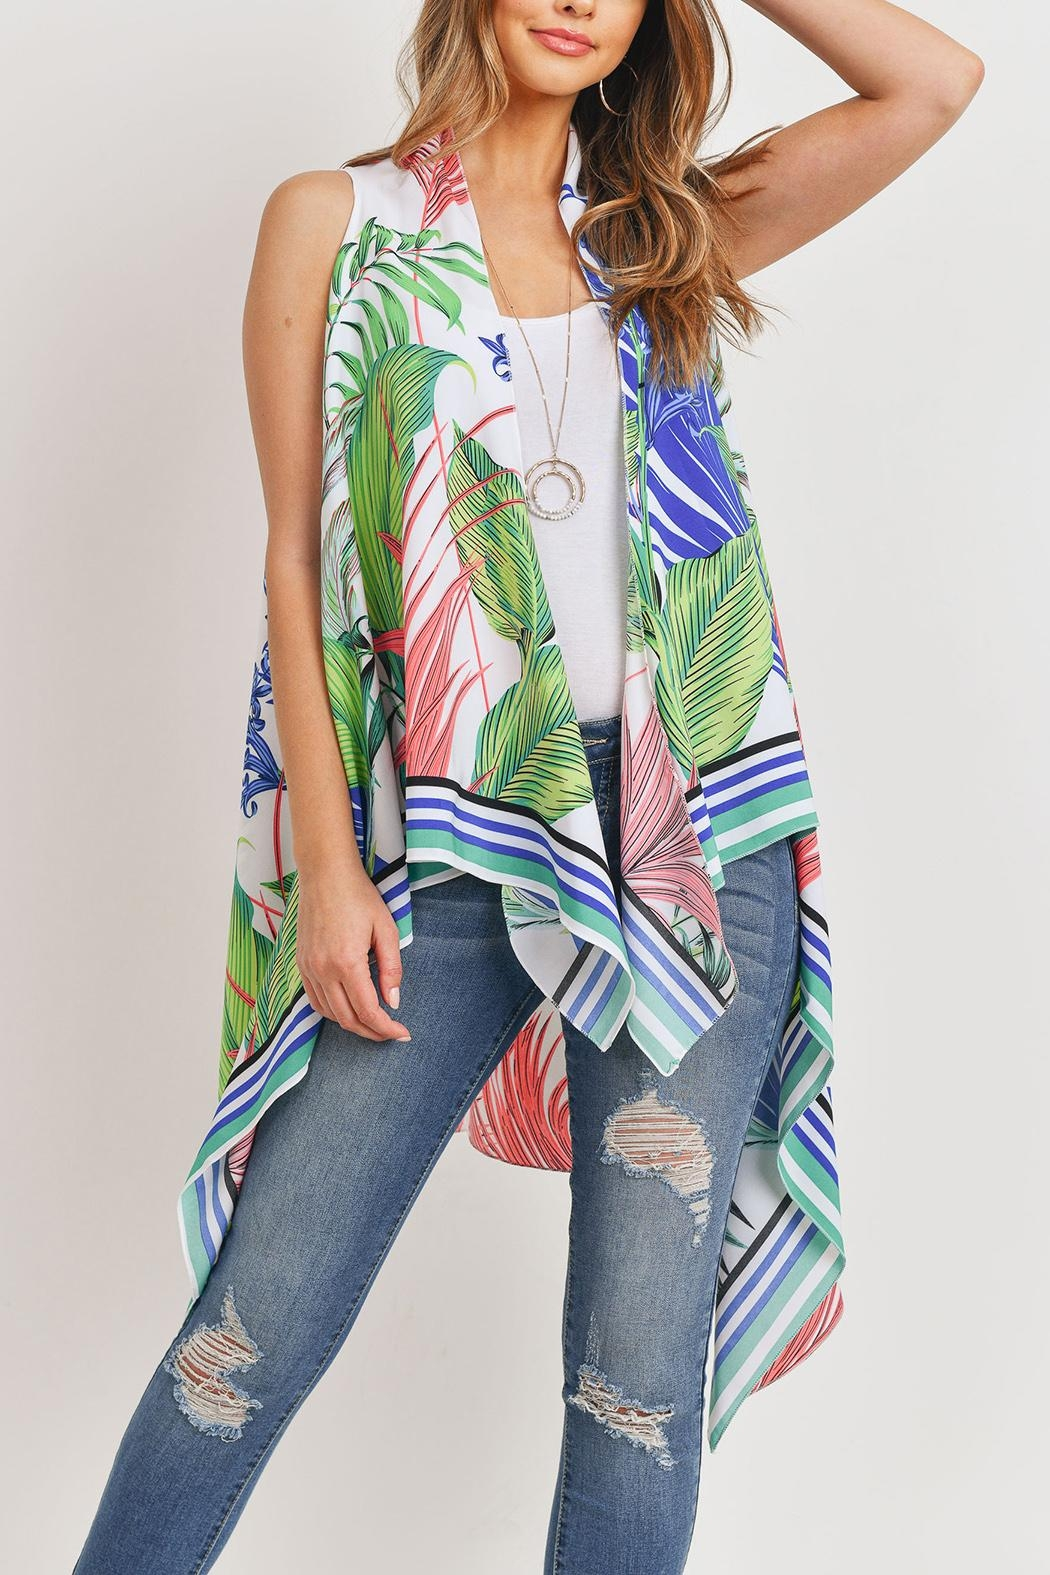 Riah Fashion Tropical-Plant Print-Open Front-Kimono-Vest - Main Image